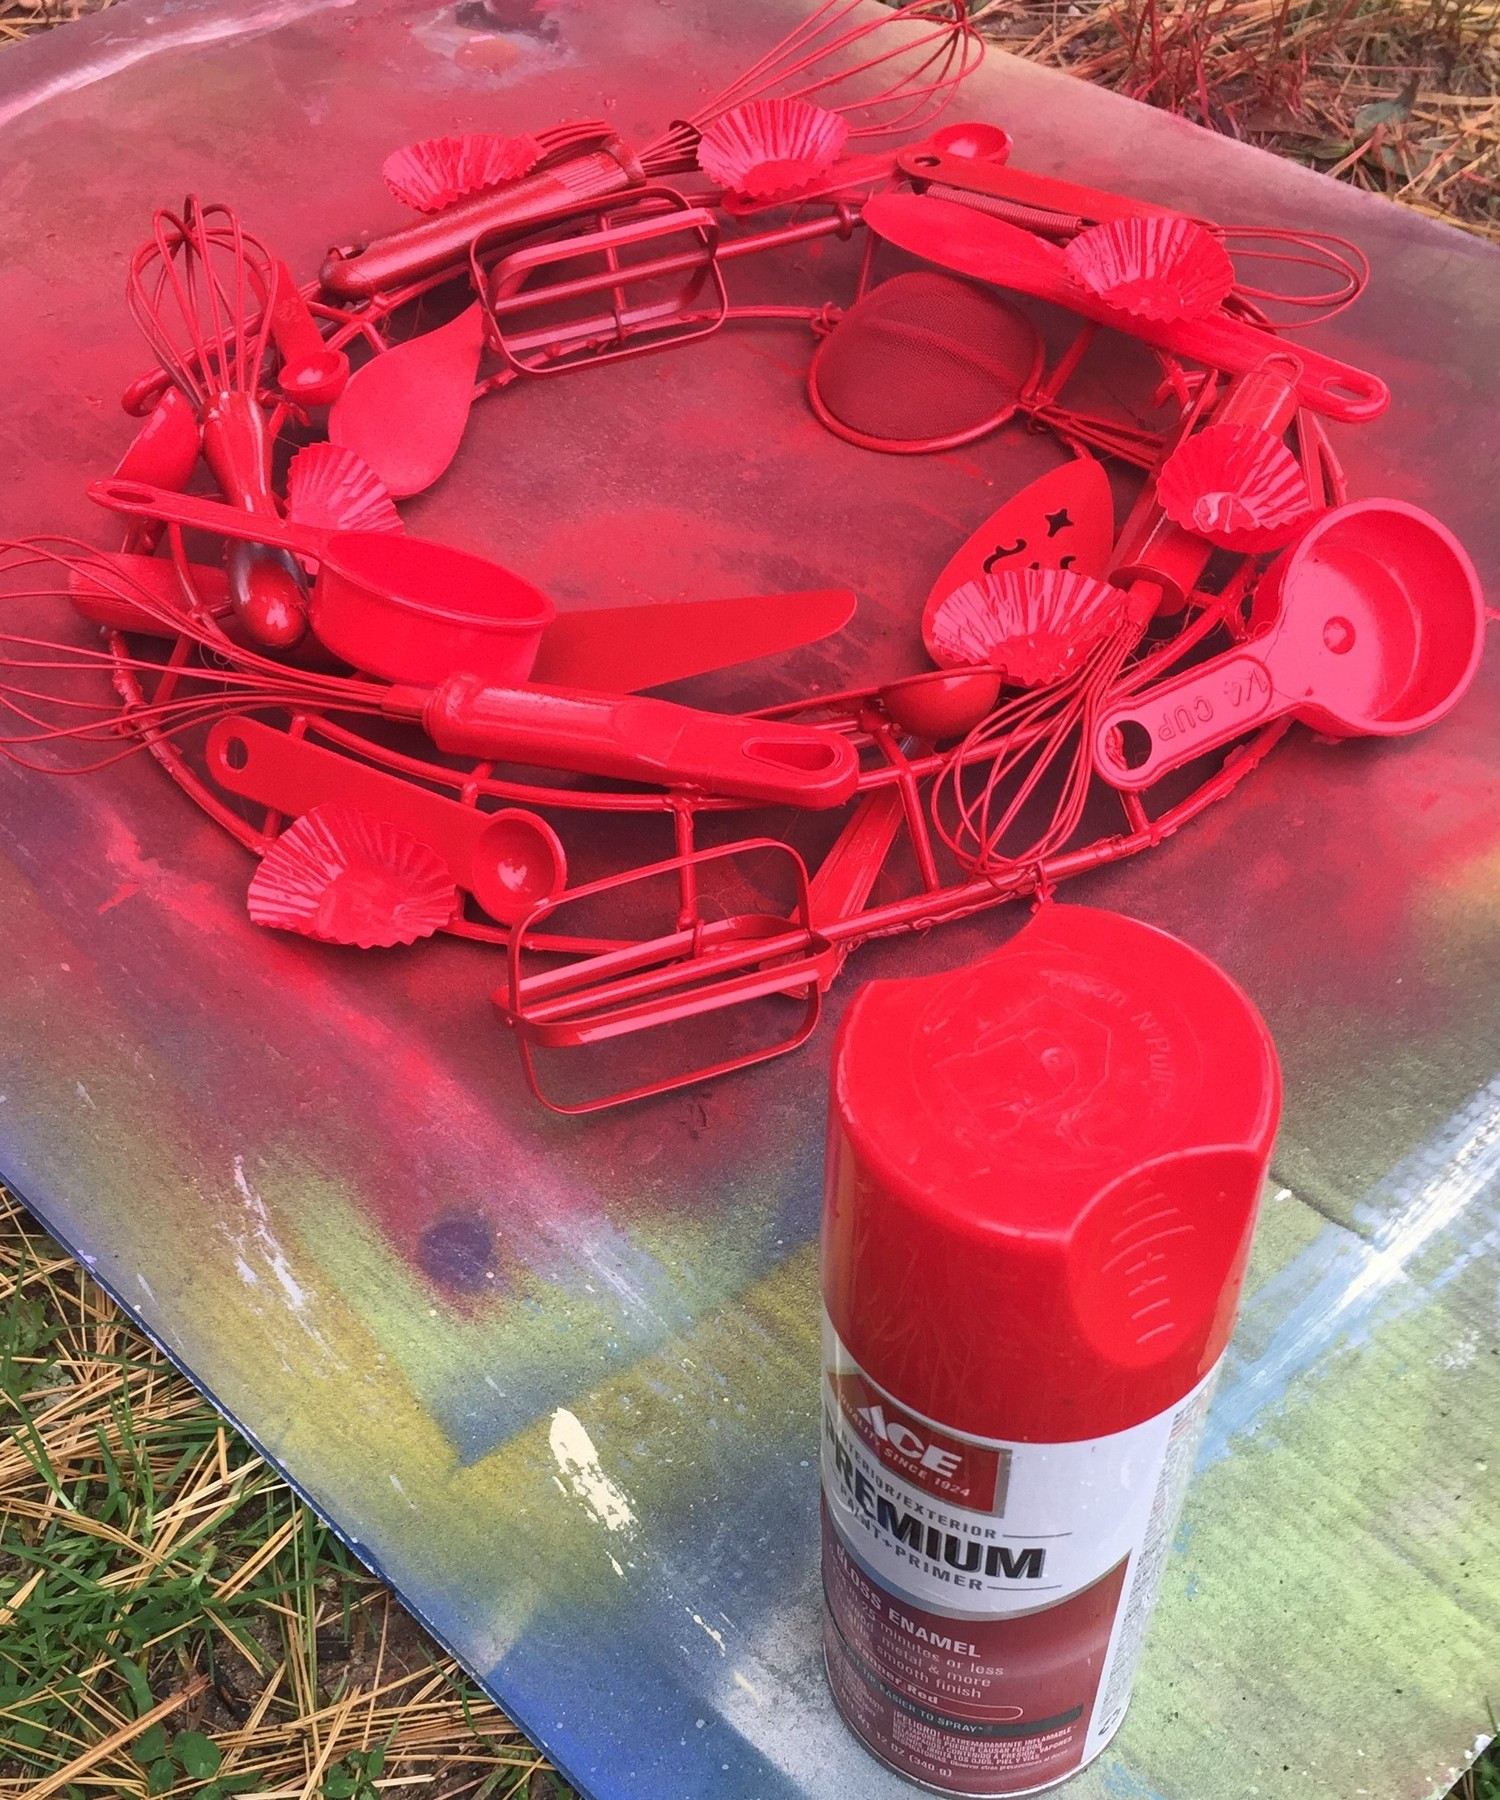 Tim's utensil wreath spray painted red.